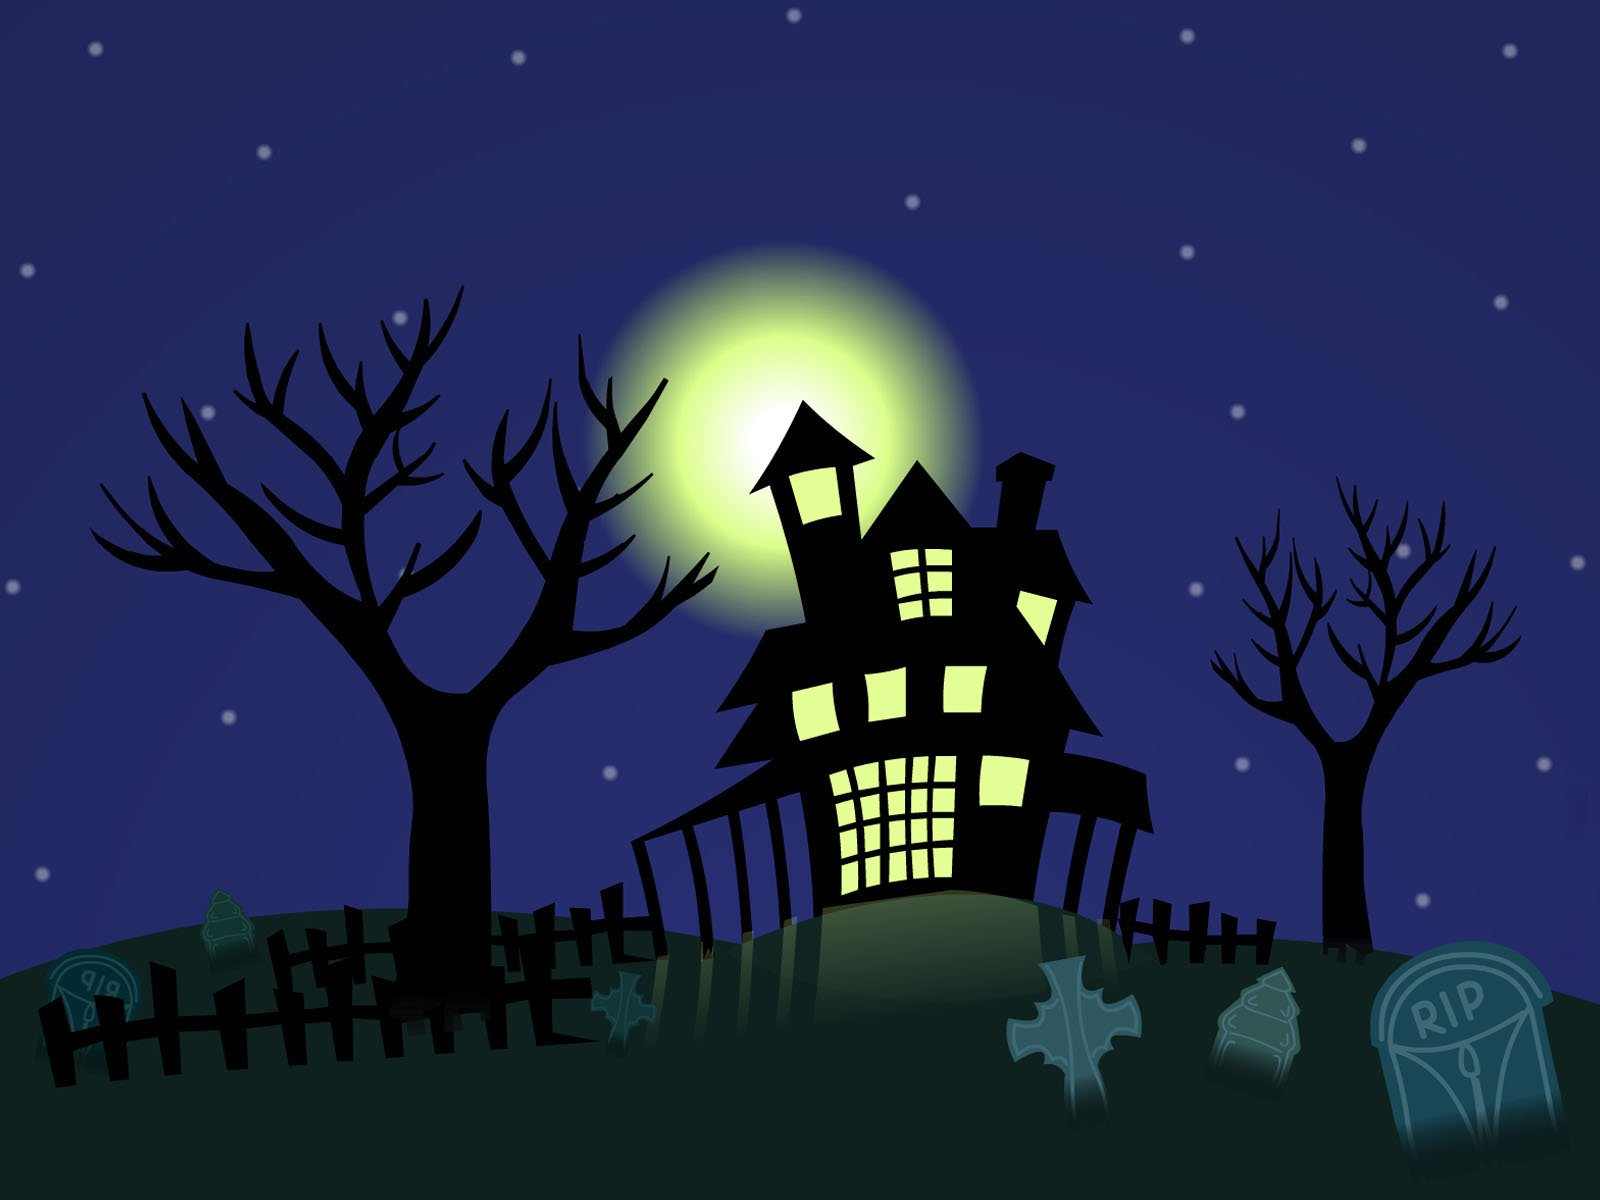 halloween desktop wallpaper animated   wwwwallpapers in hdcom 1600x1200